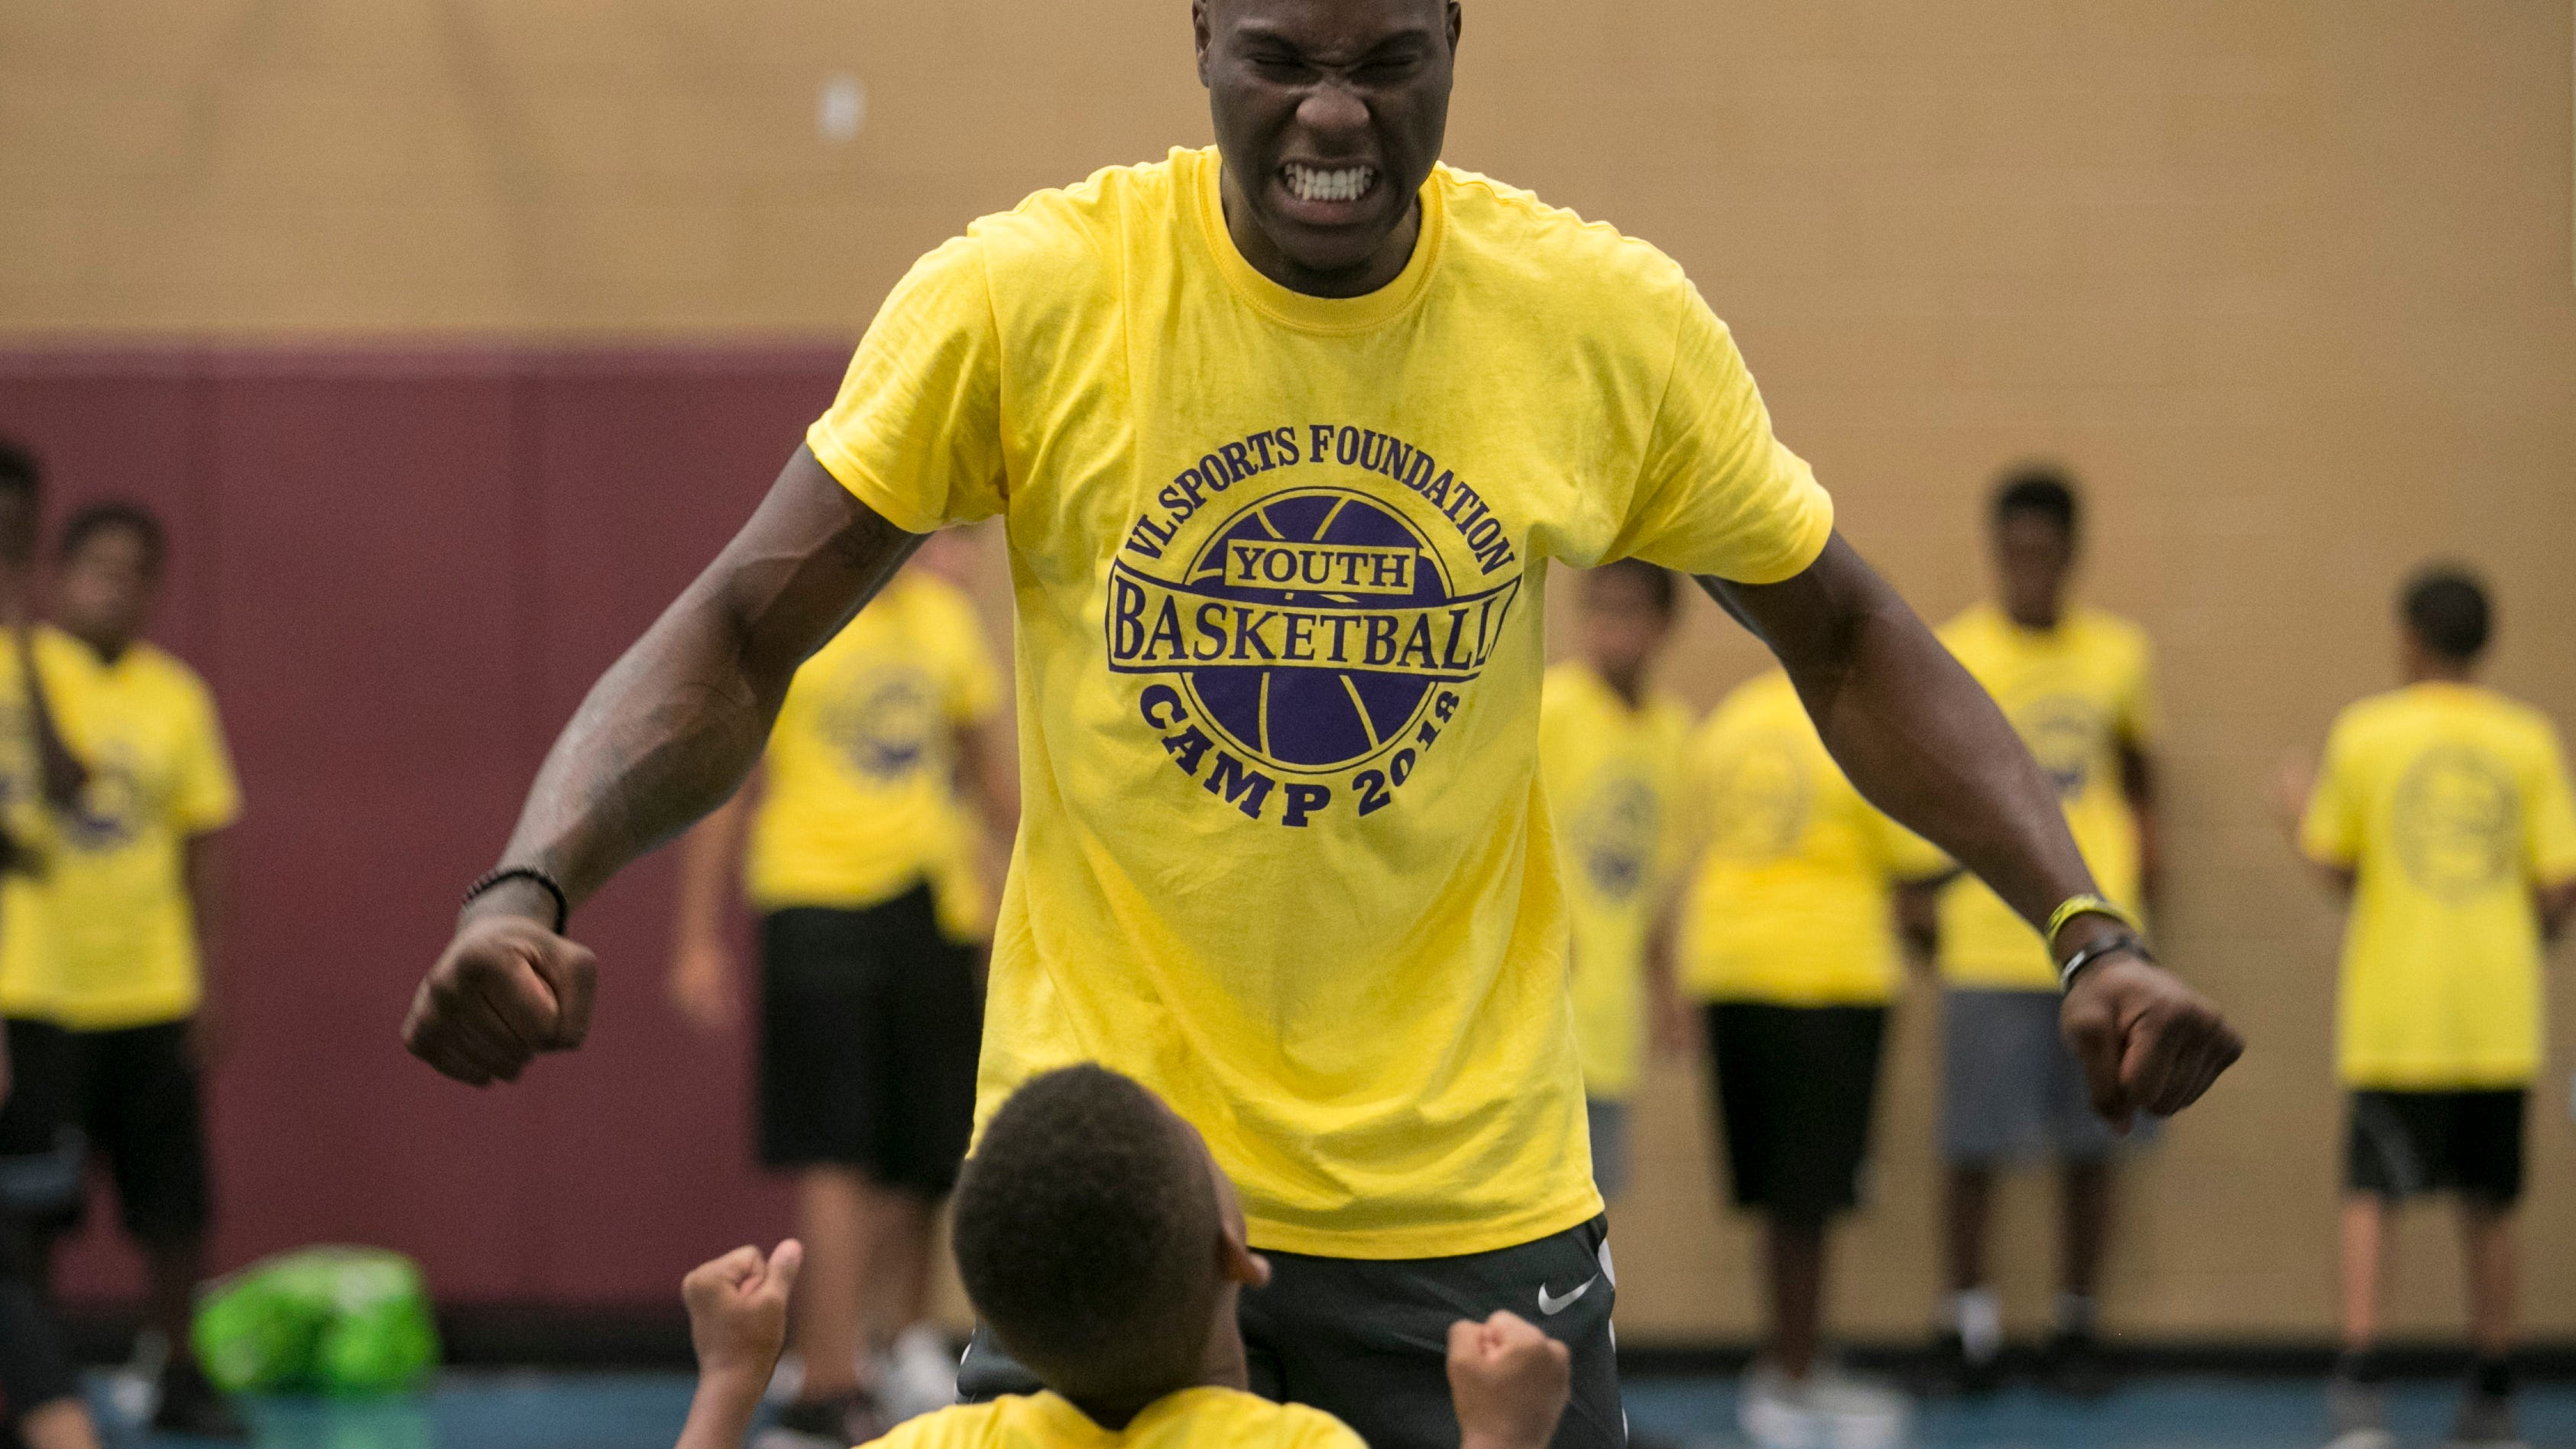 Emmitt Williams gets Chance Hixon, 6, fired up before lifting him for a dunk at the VL Sports Foundation free youth basketball camp Saturday at the STARS Complex in Fort Myers.